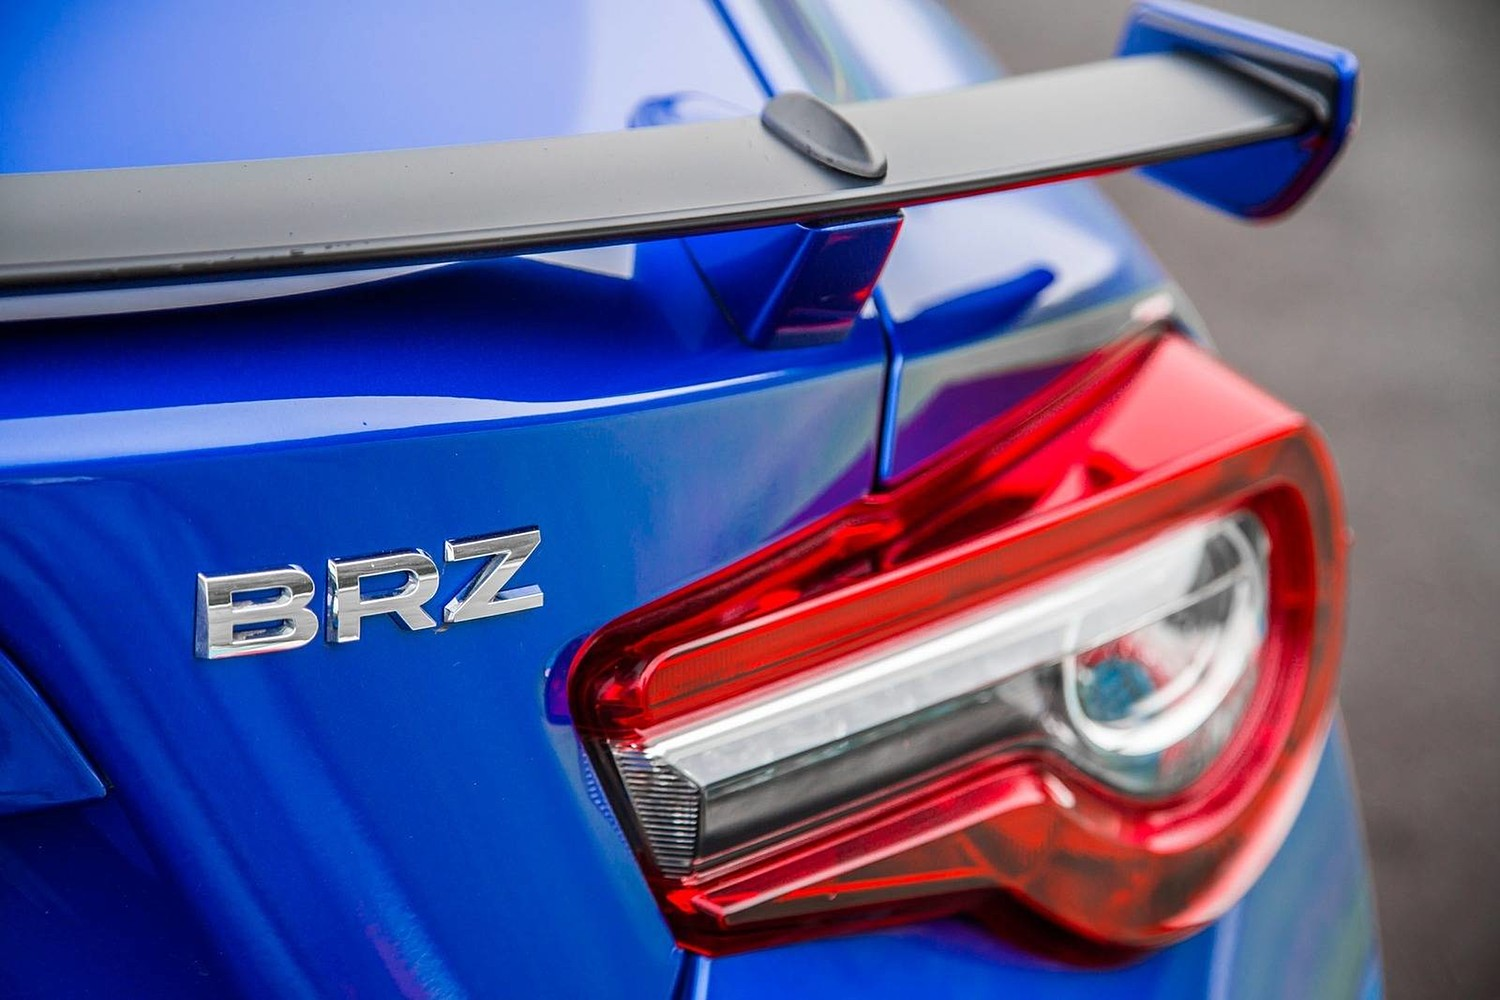 Subaru BRZ Limited Coupe Rear Badge (2017 model year shown)